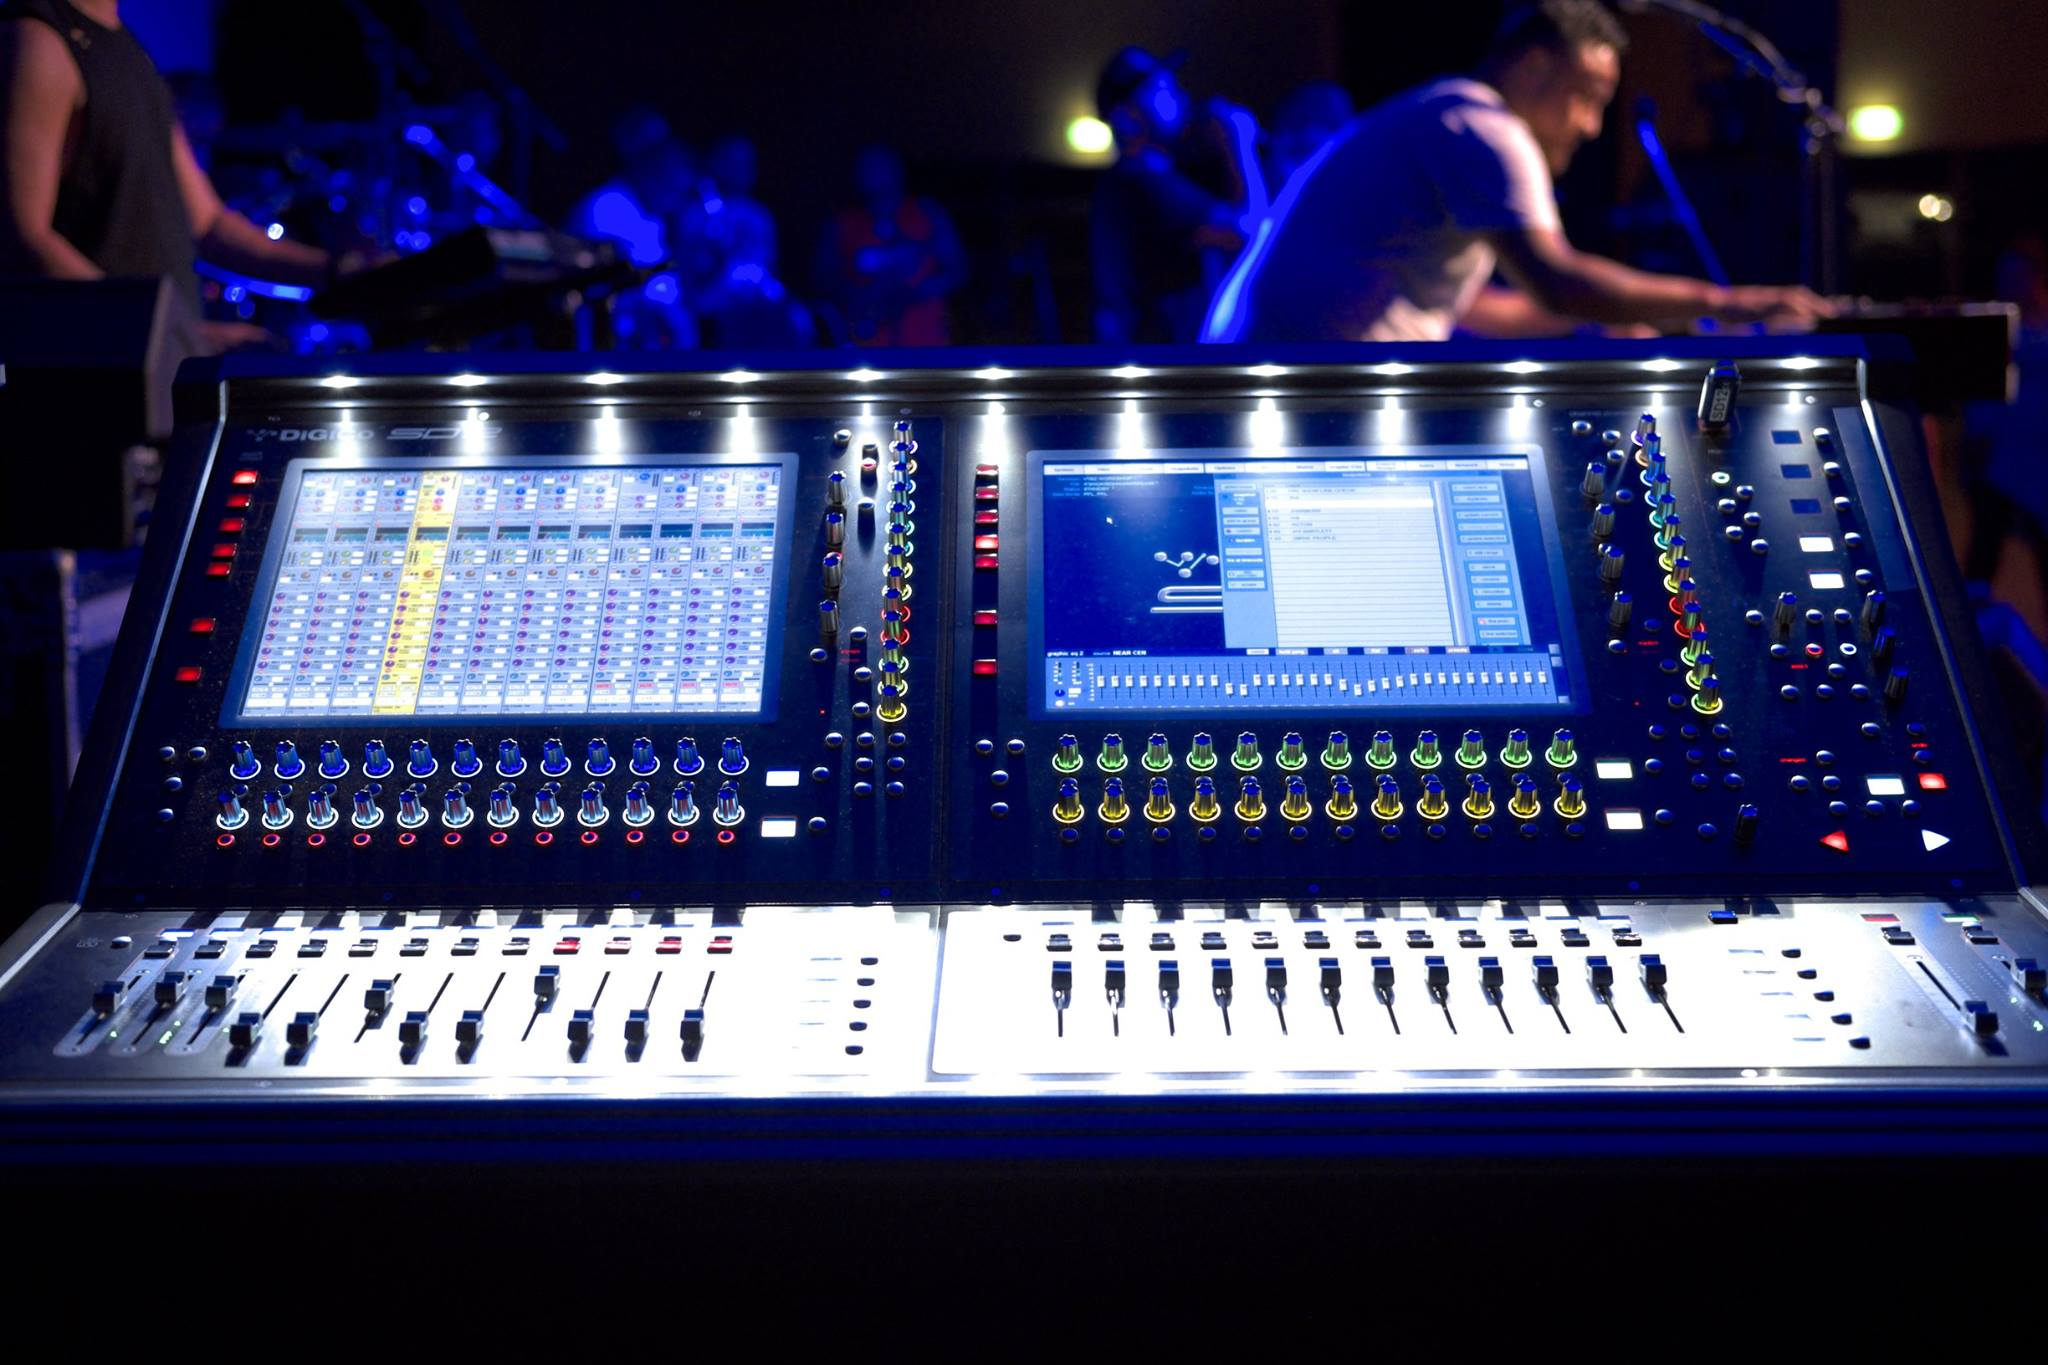 Sound, Video and Control Solutions